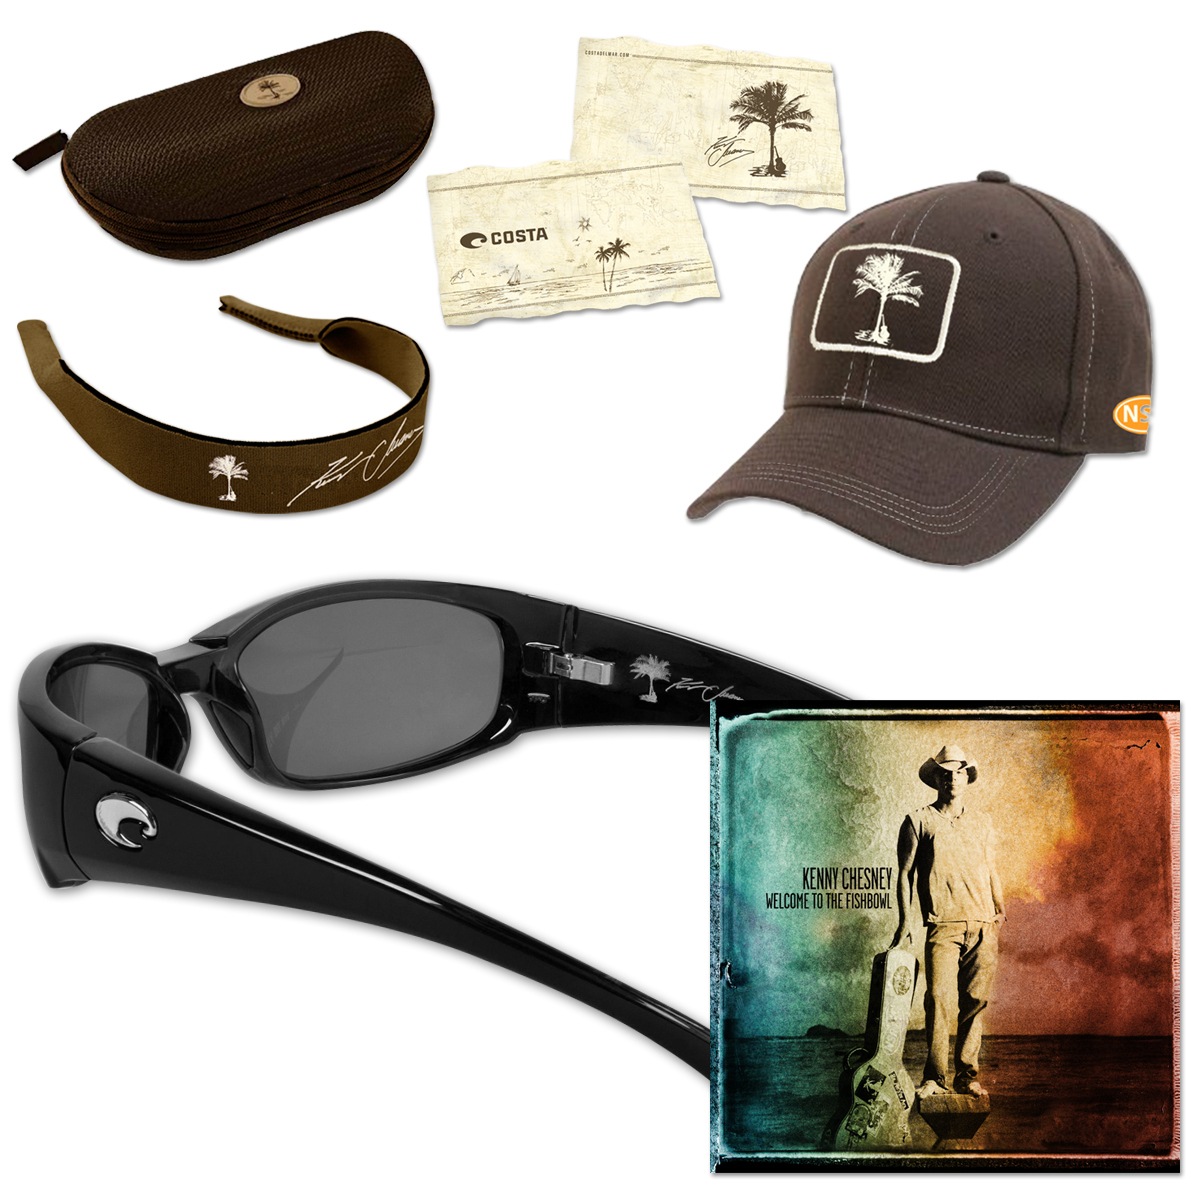 Kenny Chesney Welcome to the Fishbowl Sunglasses CD or MP3 with Hammerhead Sunglasses - Black Frame/Grey 580P Lens